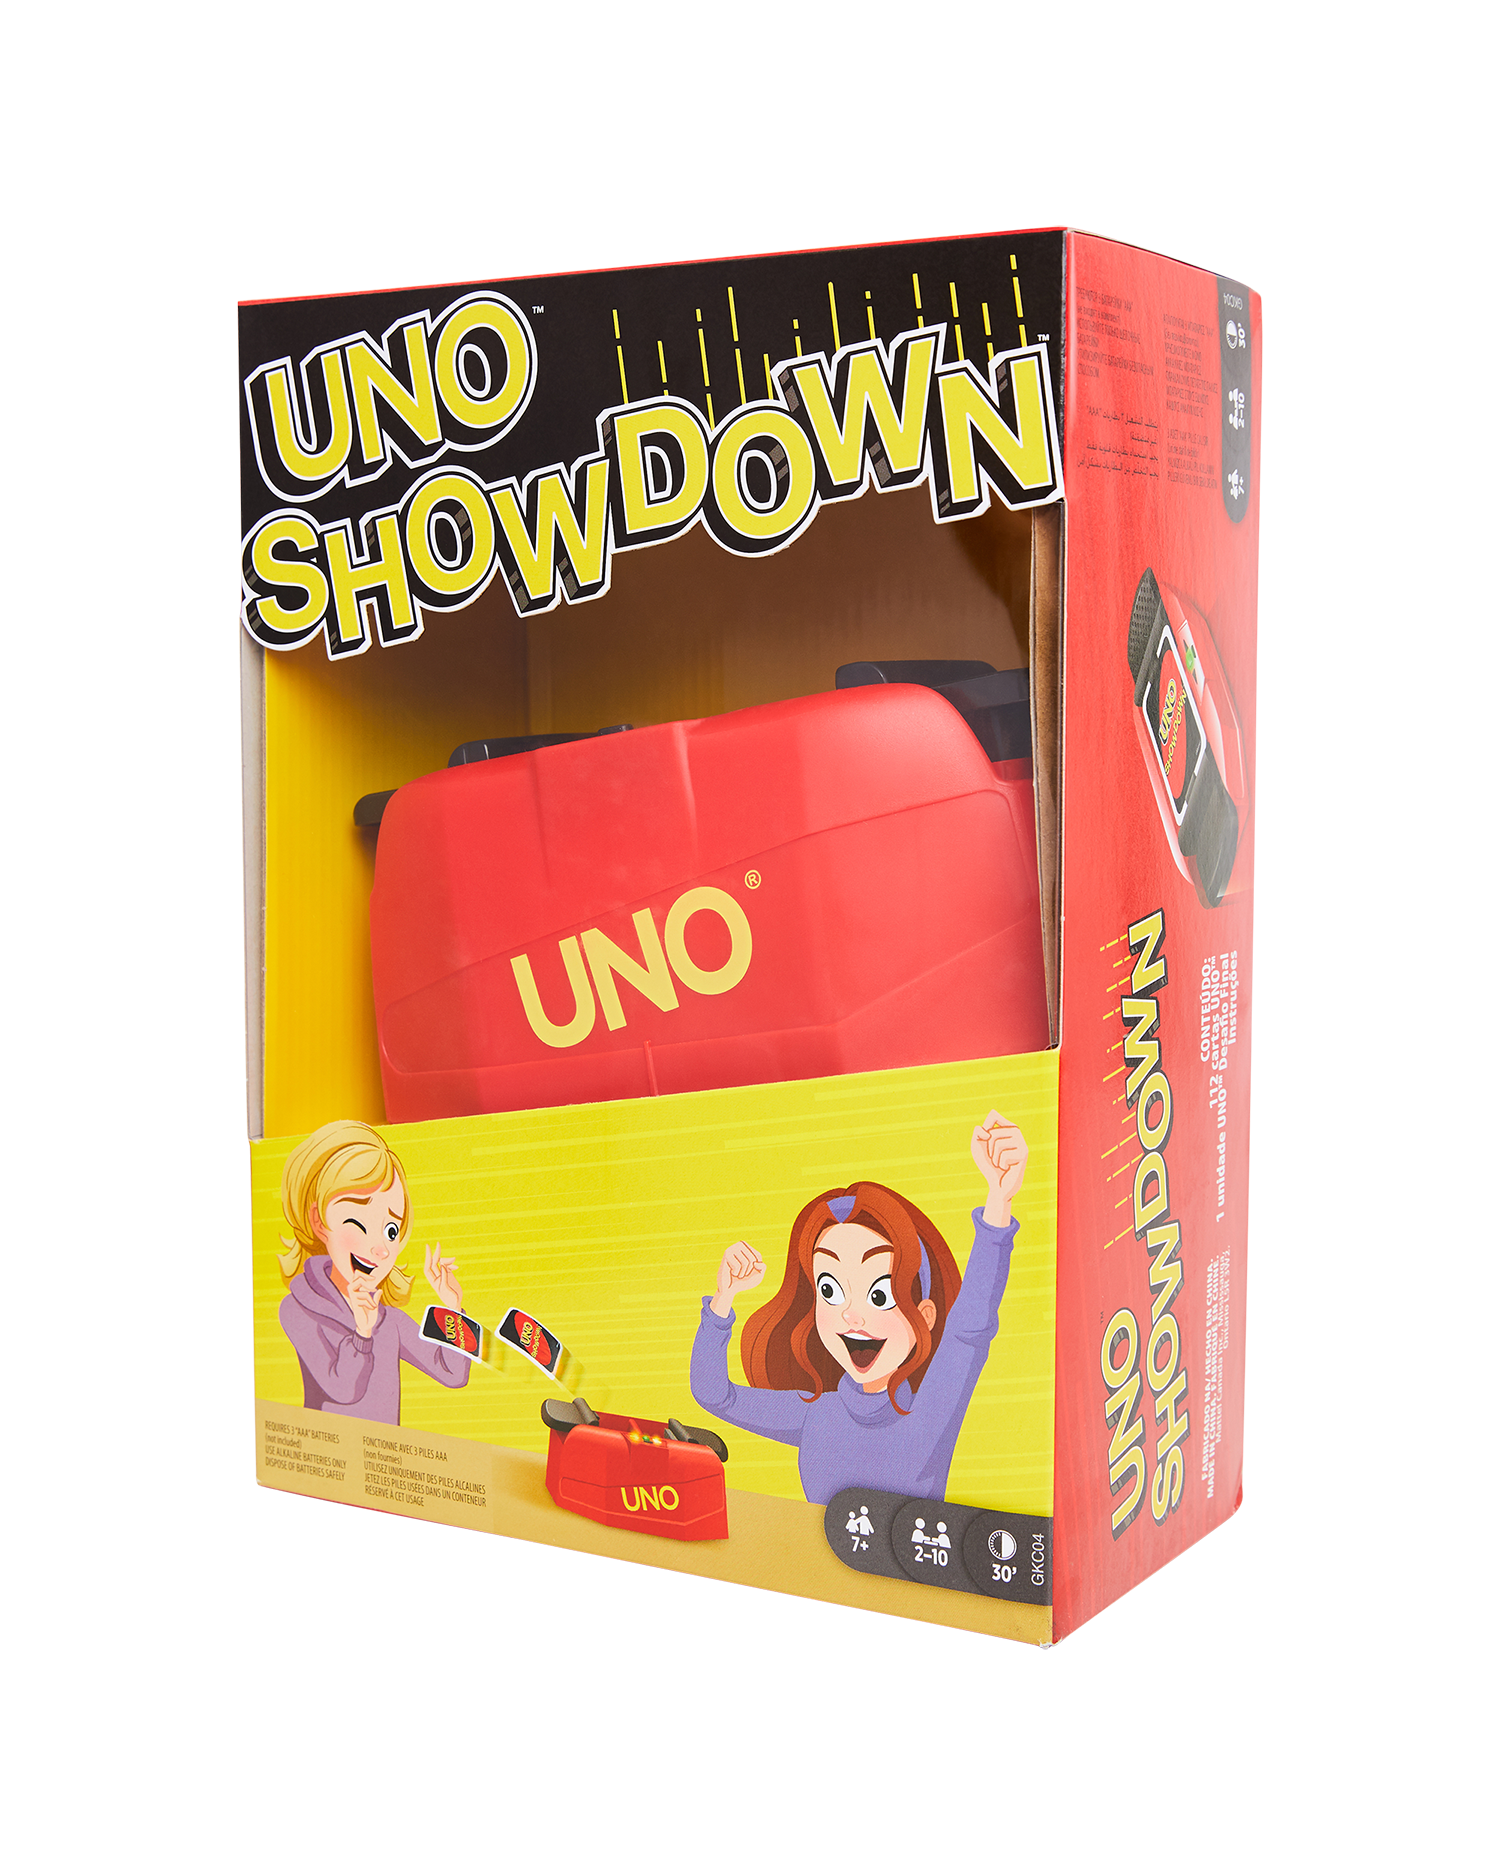 mattel-games-uno-showdown,-currently-priced-at-£15.99.png